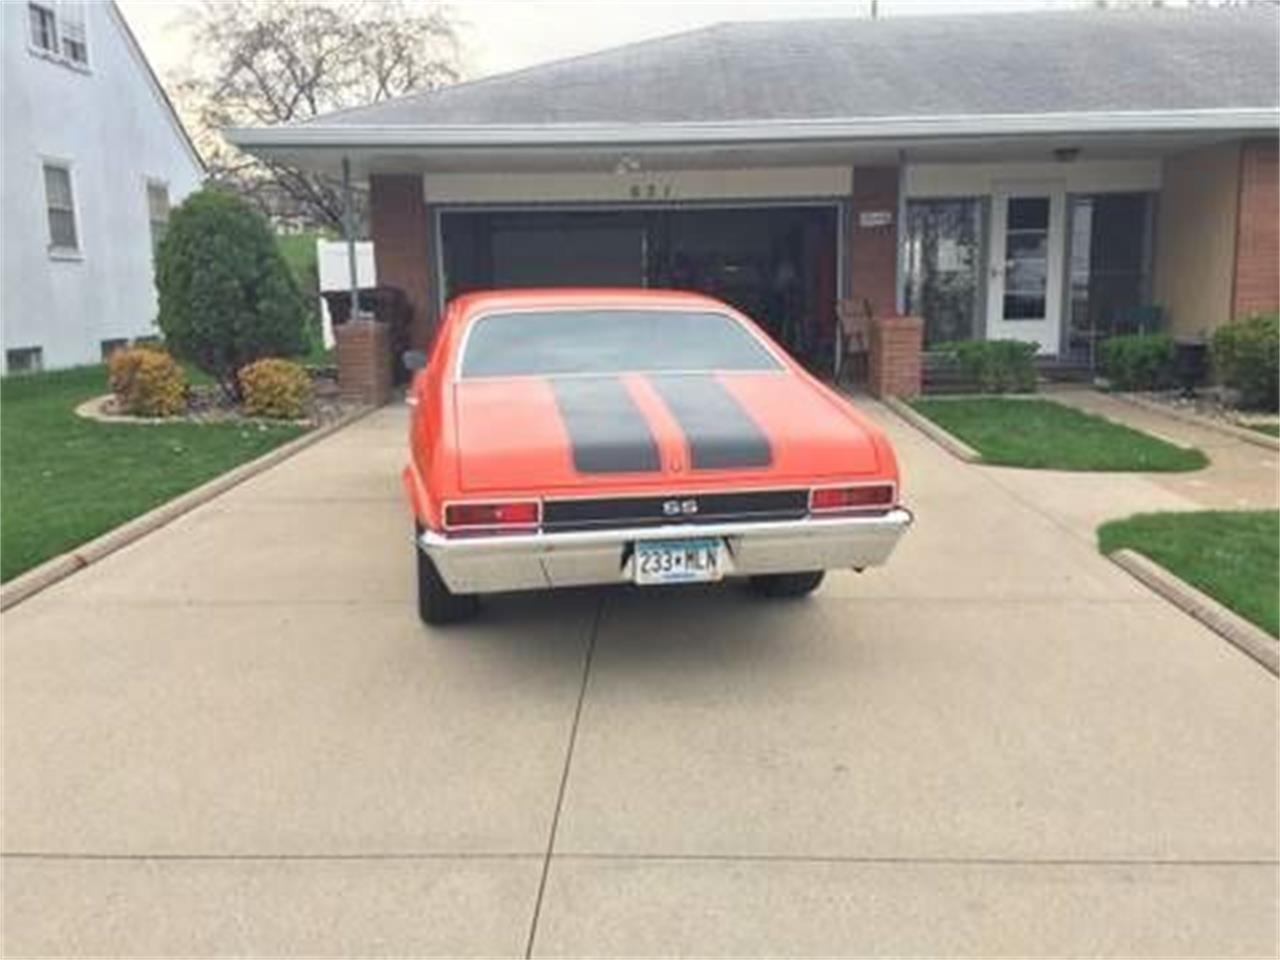 Large Picture of Classic 1970 Chevrolet Nova located in Cadillac Michigan - $34,995.00 Offered by Classic Car Deals - NZWN